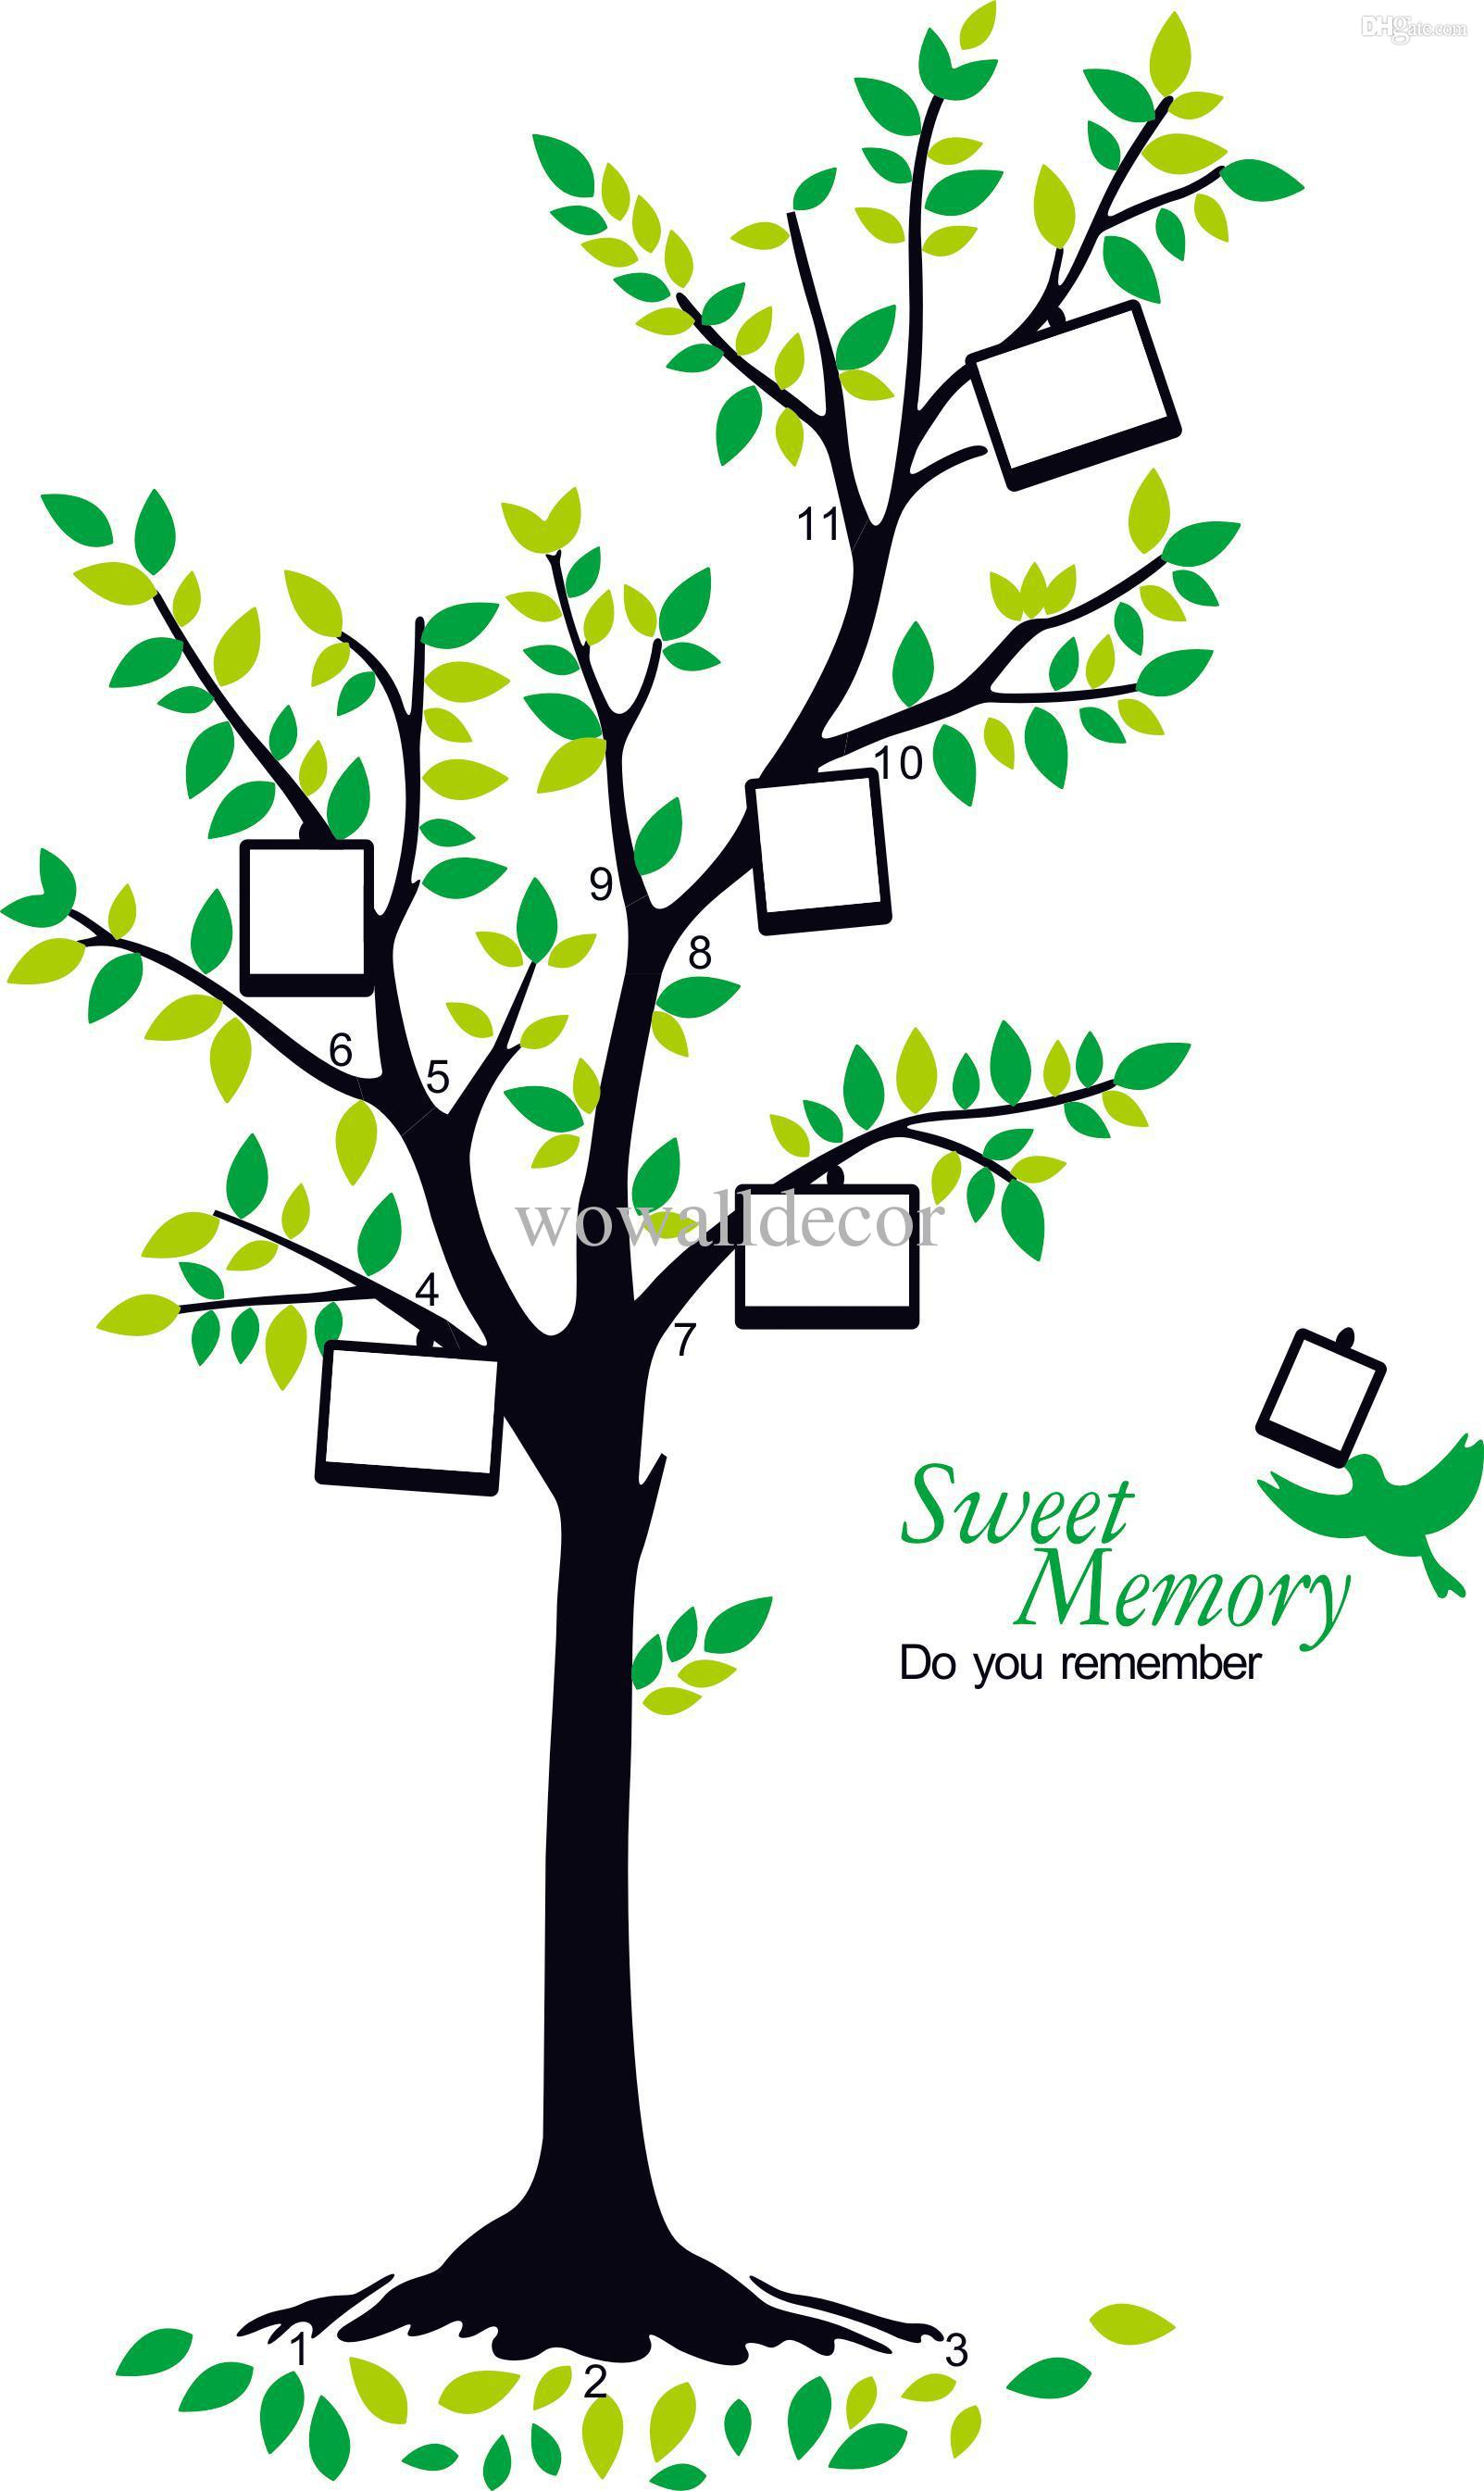 Family tree images free download best family tree images - Family tree desktop wallpaper ...